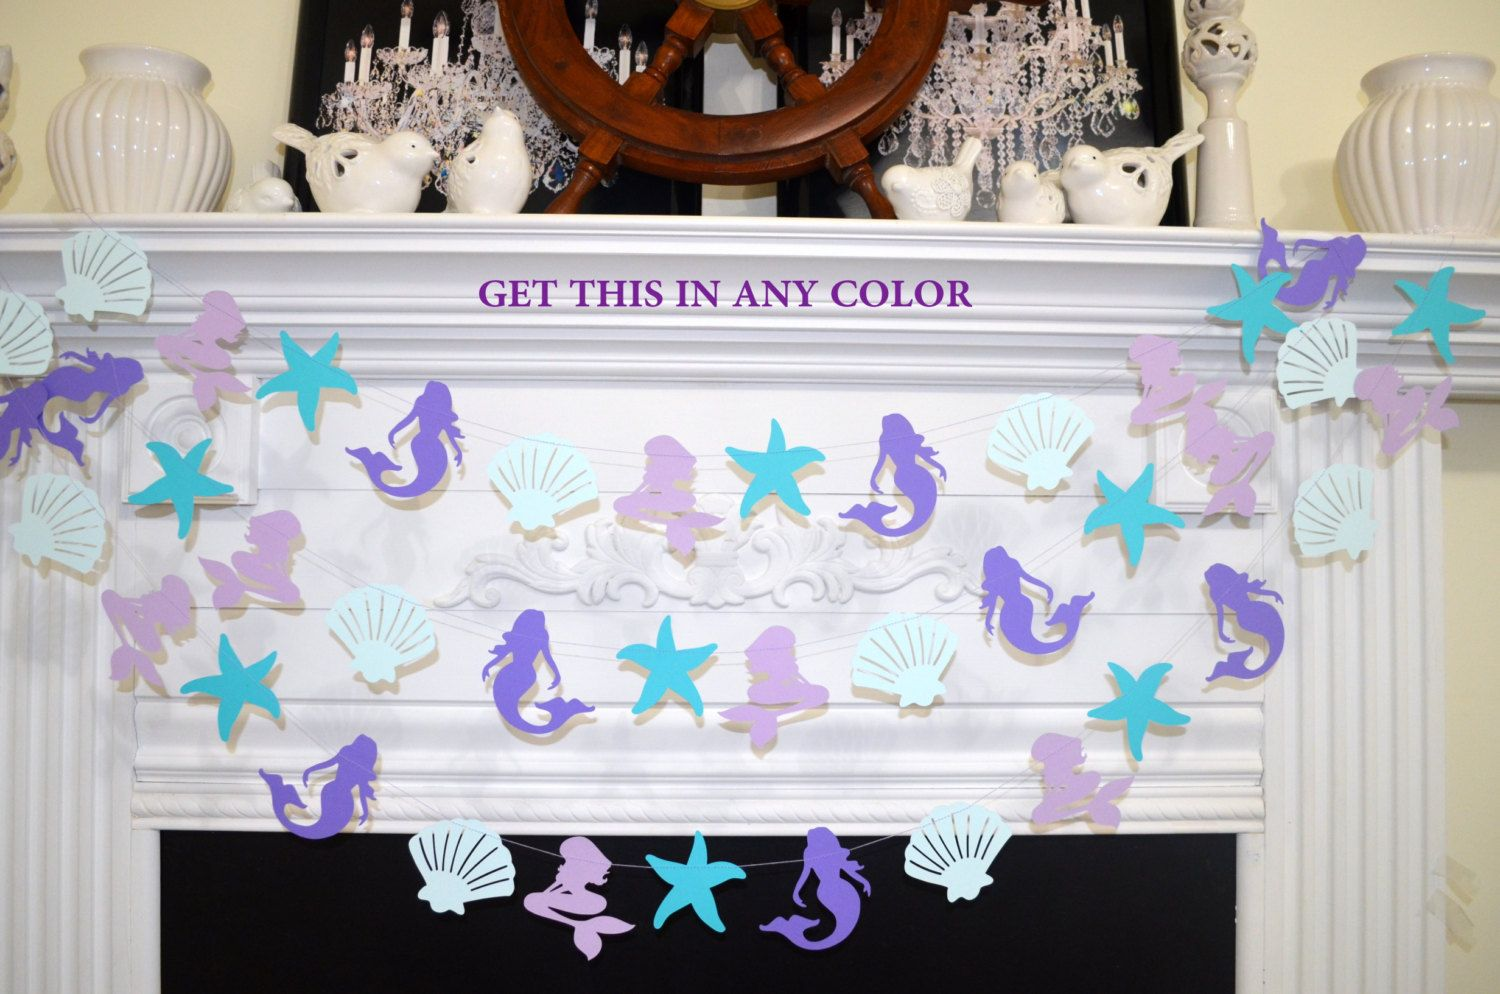 etsy-product - Bridal Shower Ideas - Themes | em\'s 11th bday ...